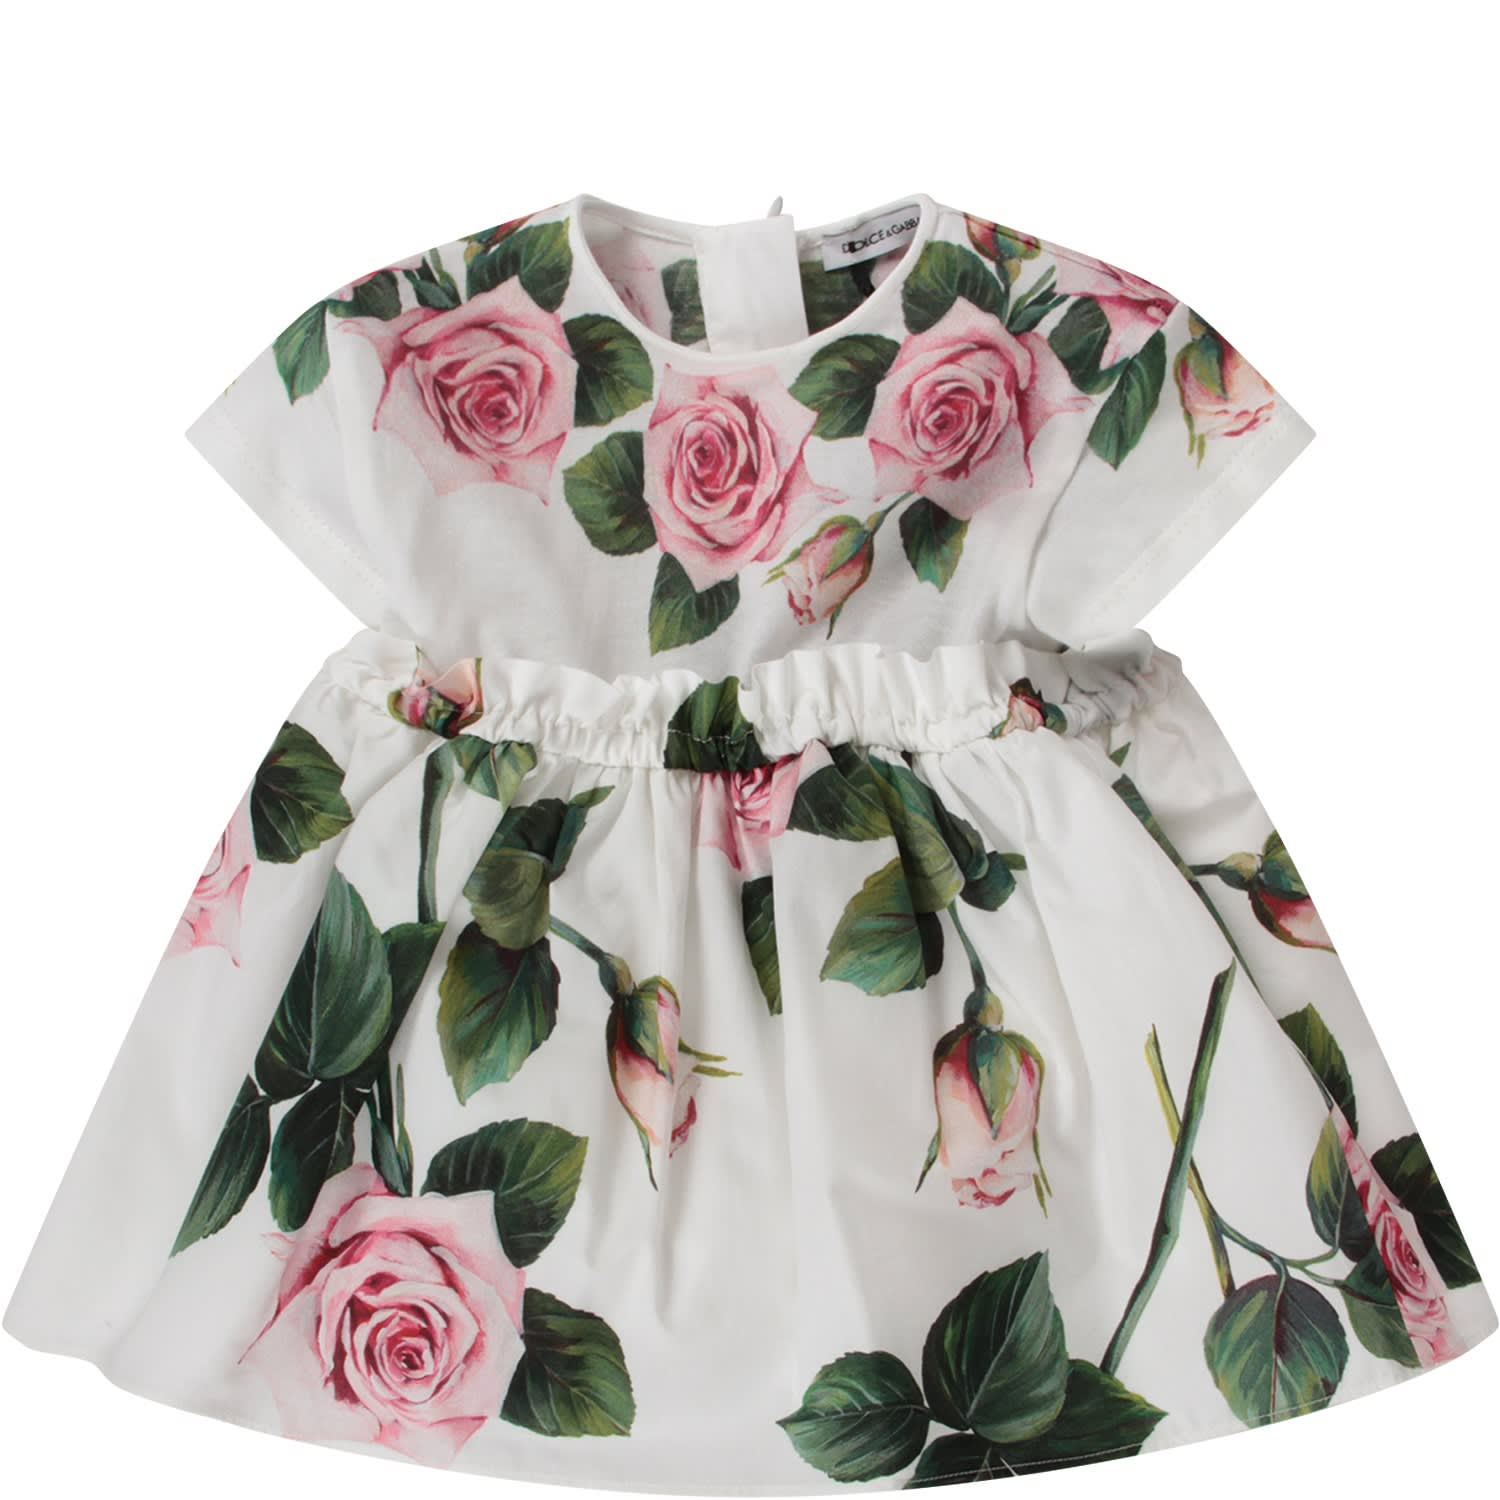 Buy Dolce & Gabbana White Babygirl Dress With Pink Roses online, shop Dolce & Gabbana with free shipping